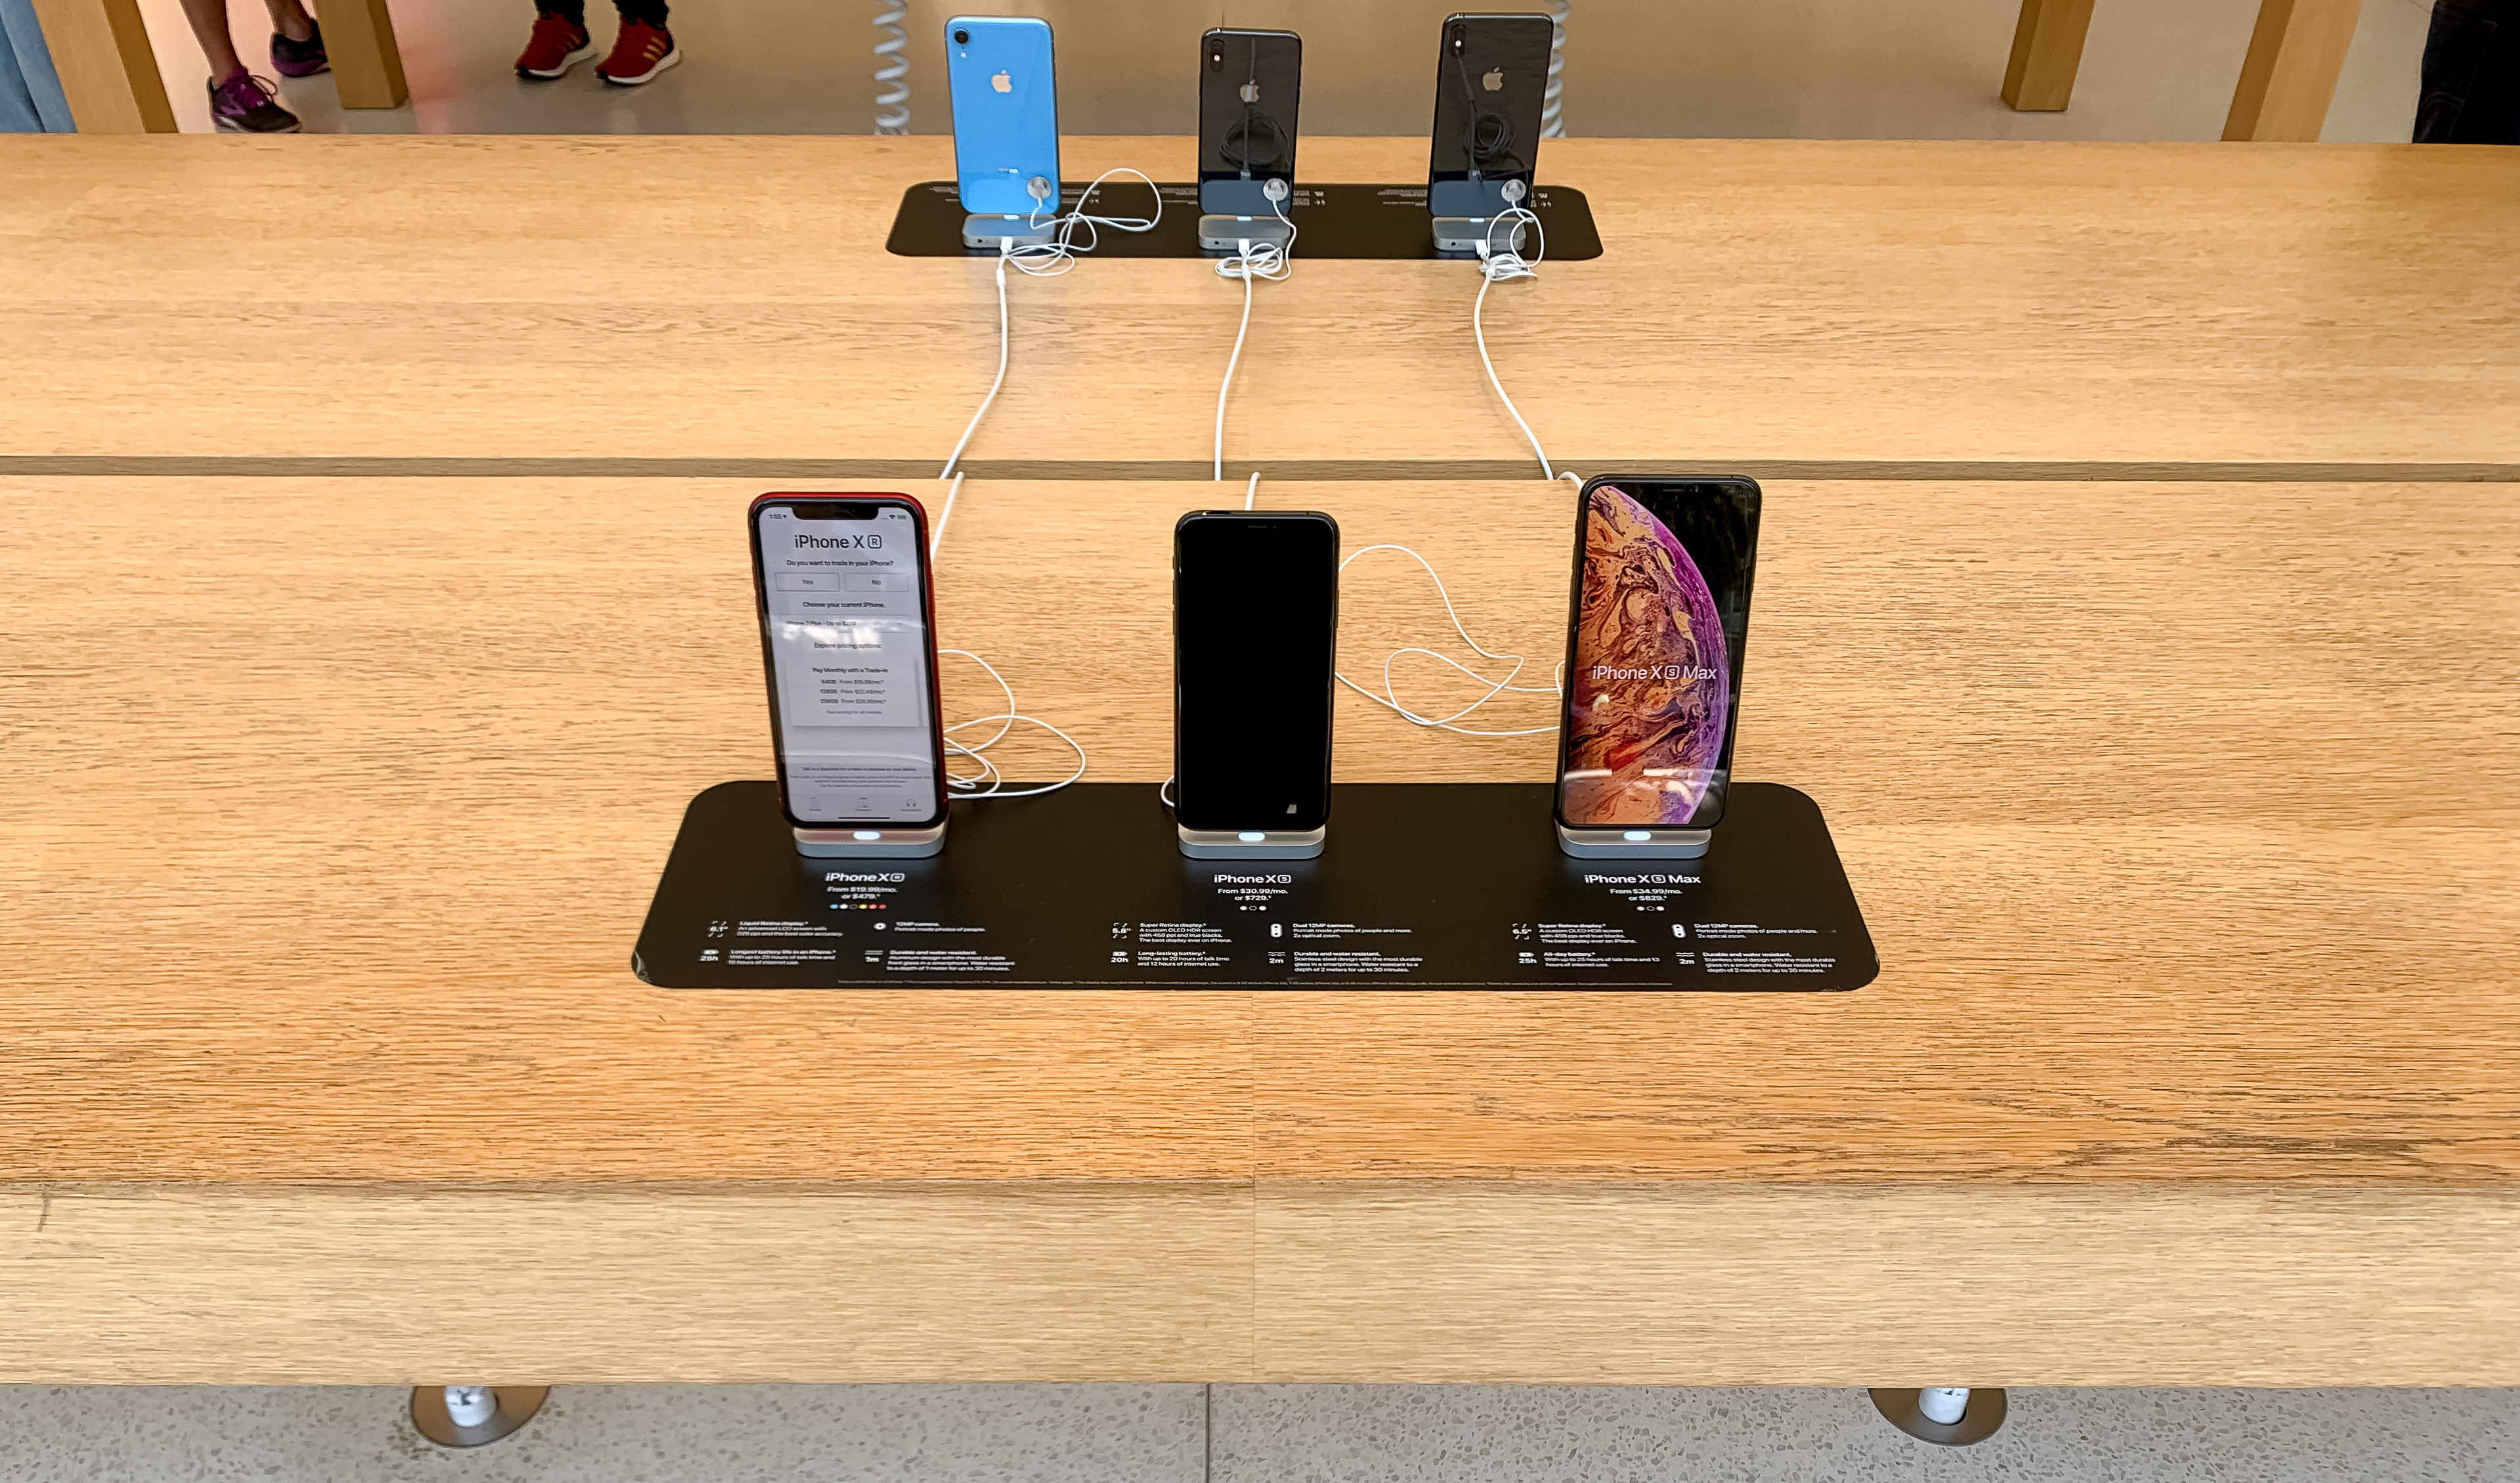 Apple Store iPhone Pricing Signs